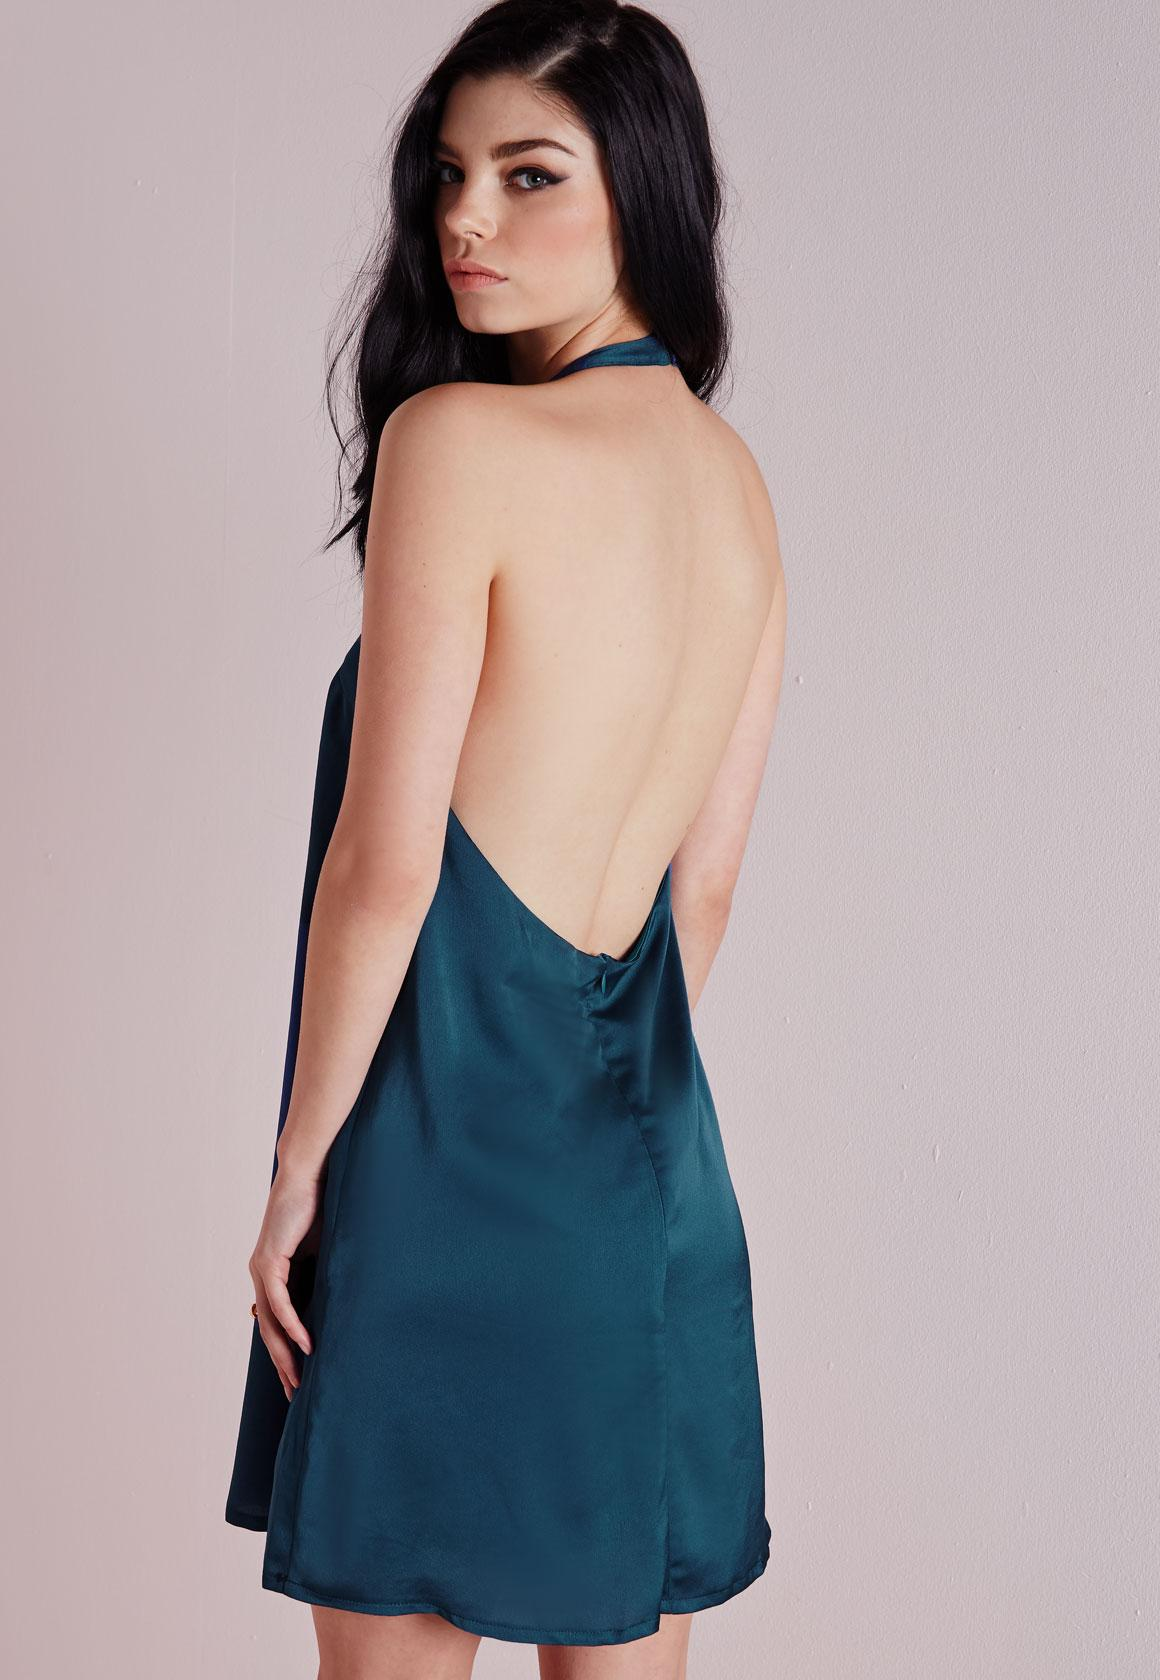 Silky Backless Shift Dress Teal - Dresses - Shift Dresses - Missguided